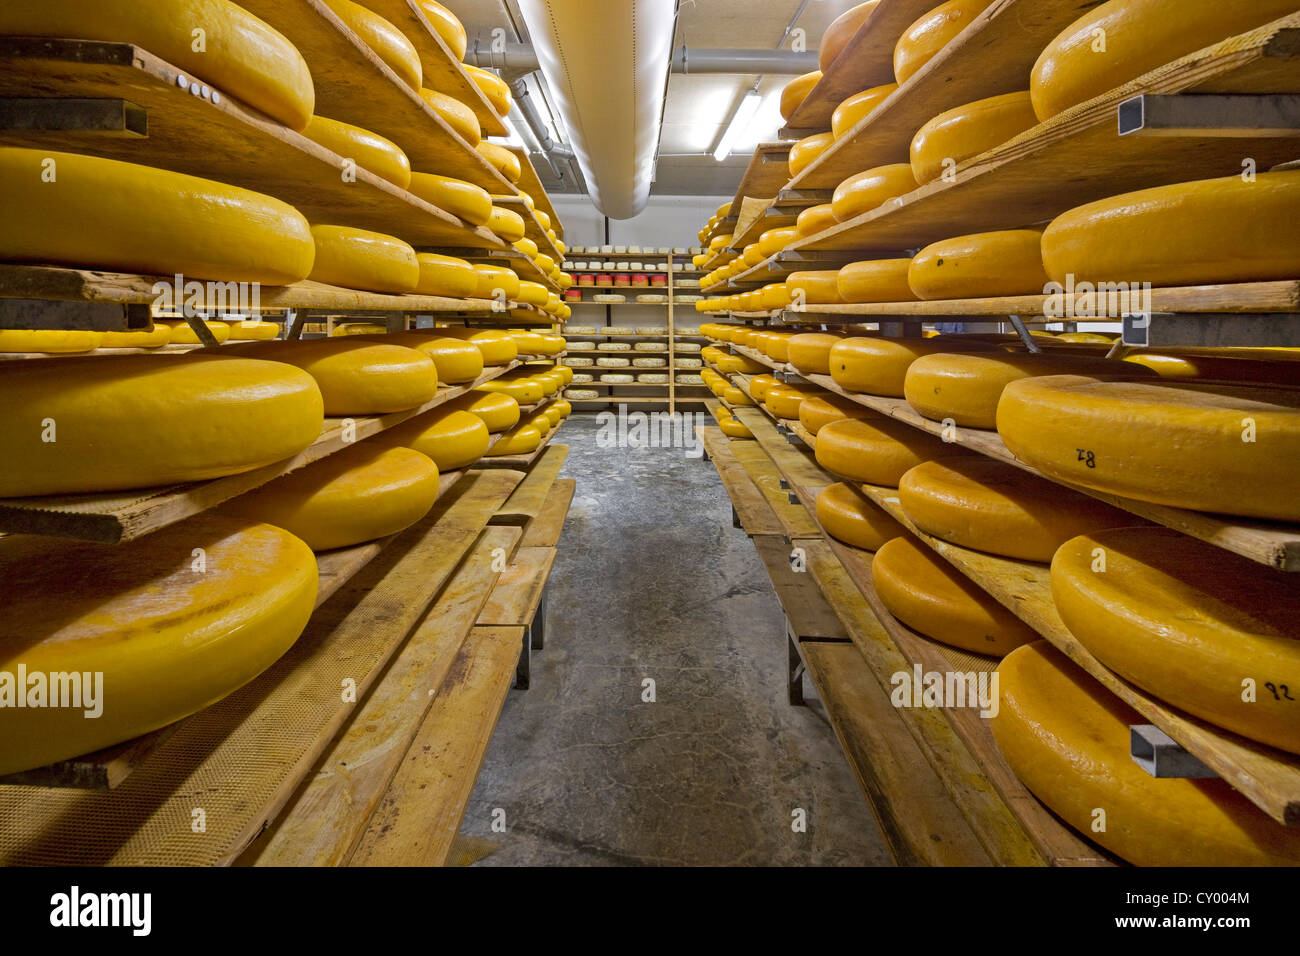 Regional artisan wheel cheeses aging on shelves in cheese dairy, Belgium - Stock Image